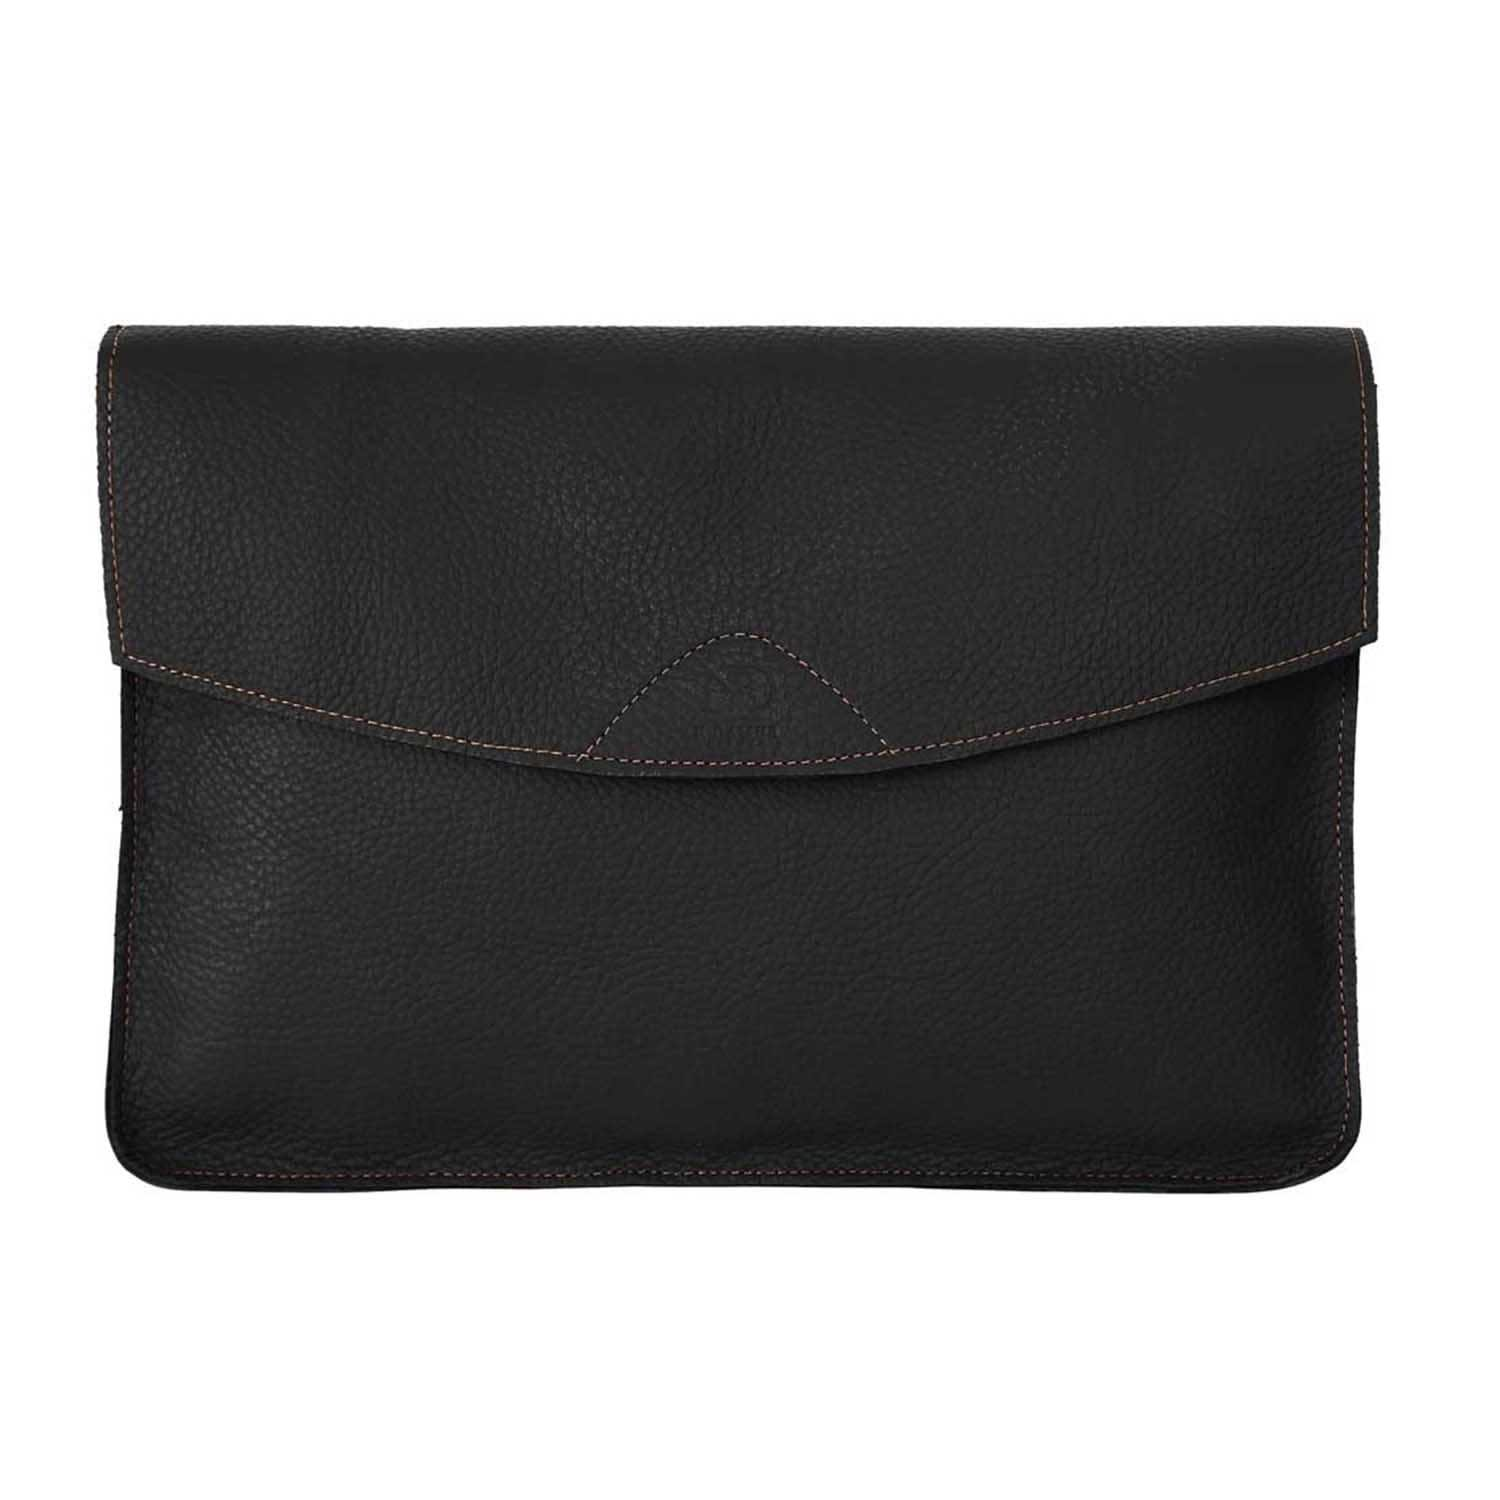 Clearance For Cheap N'Damus Arthur Leather Bifold Wallet Choice Sale Online Prices For Sale Visit New Cheap Price Clearance Largest Supplier y4NGXV